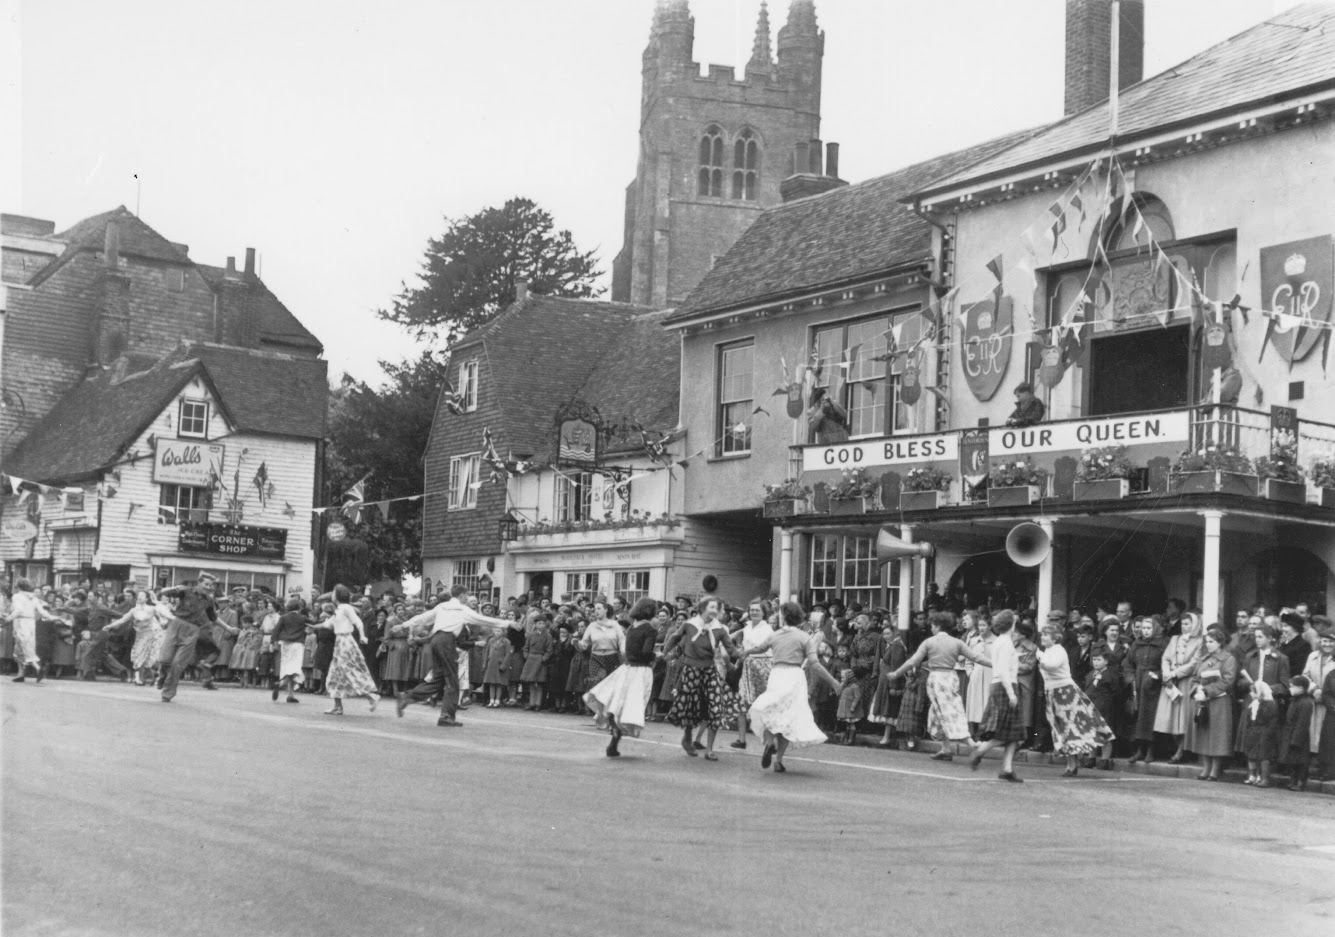 Outside Tenterden Town Hall in 1953 God Bless our Queen